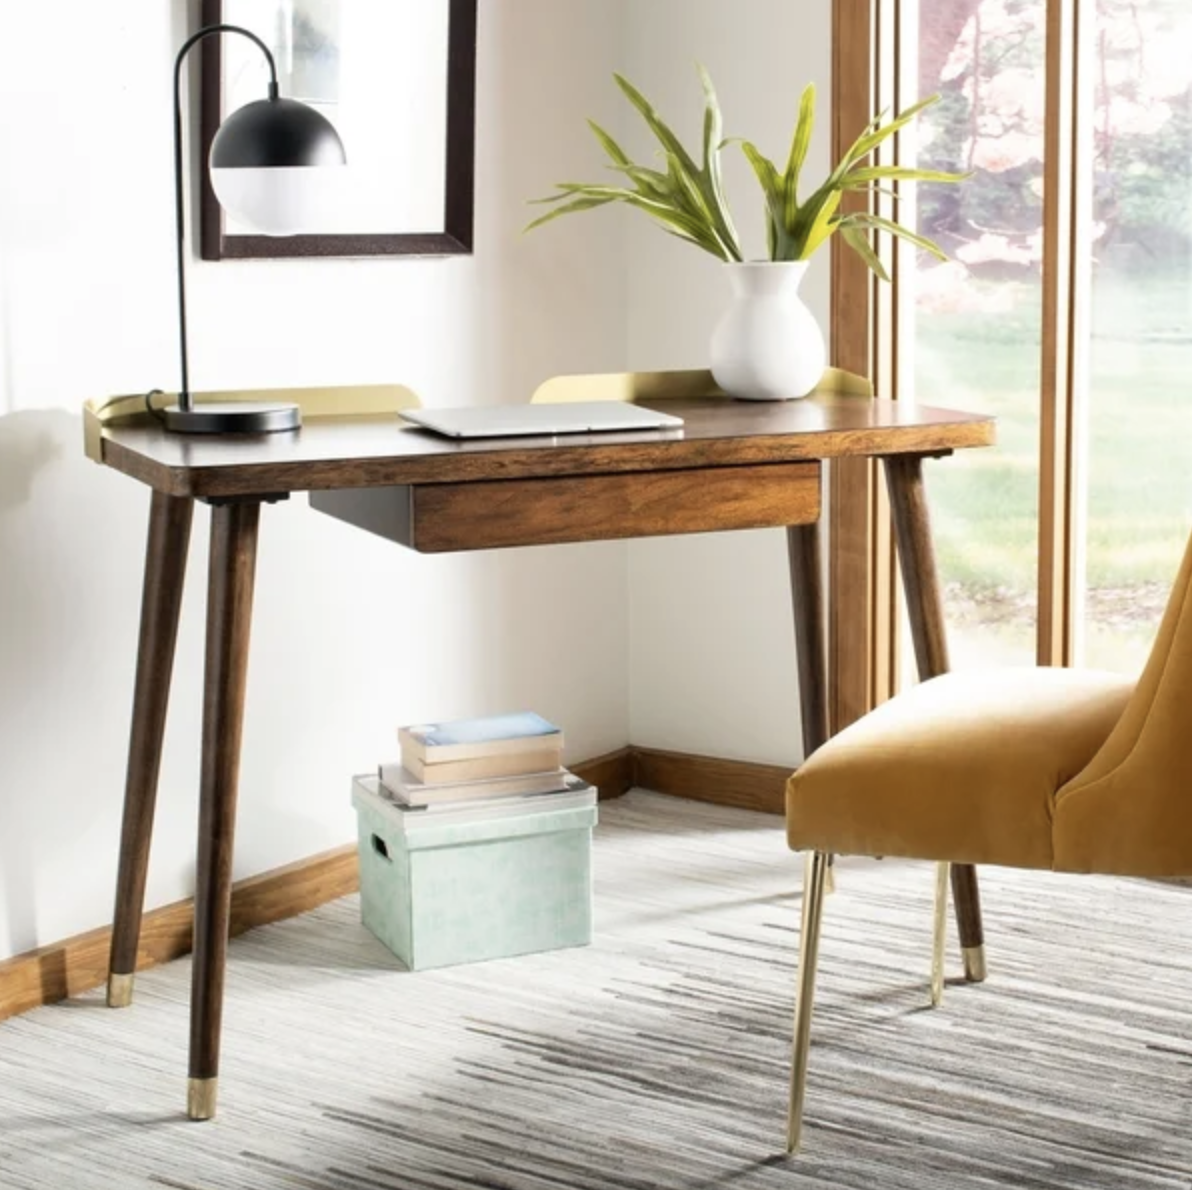 Image of: 10 Midcentury Modern Desks That Double As Home Decor Hunker